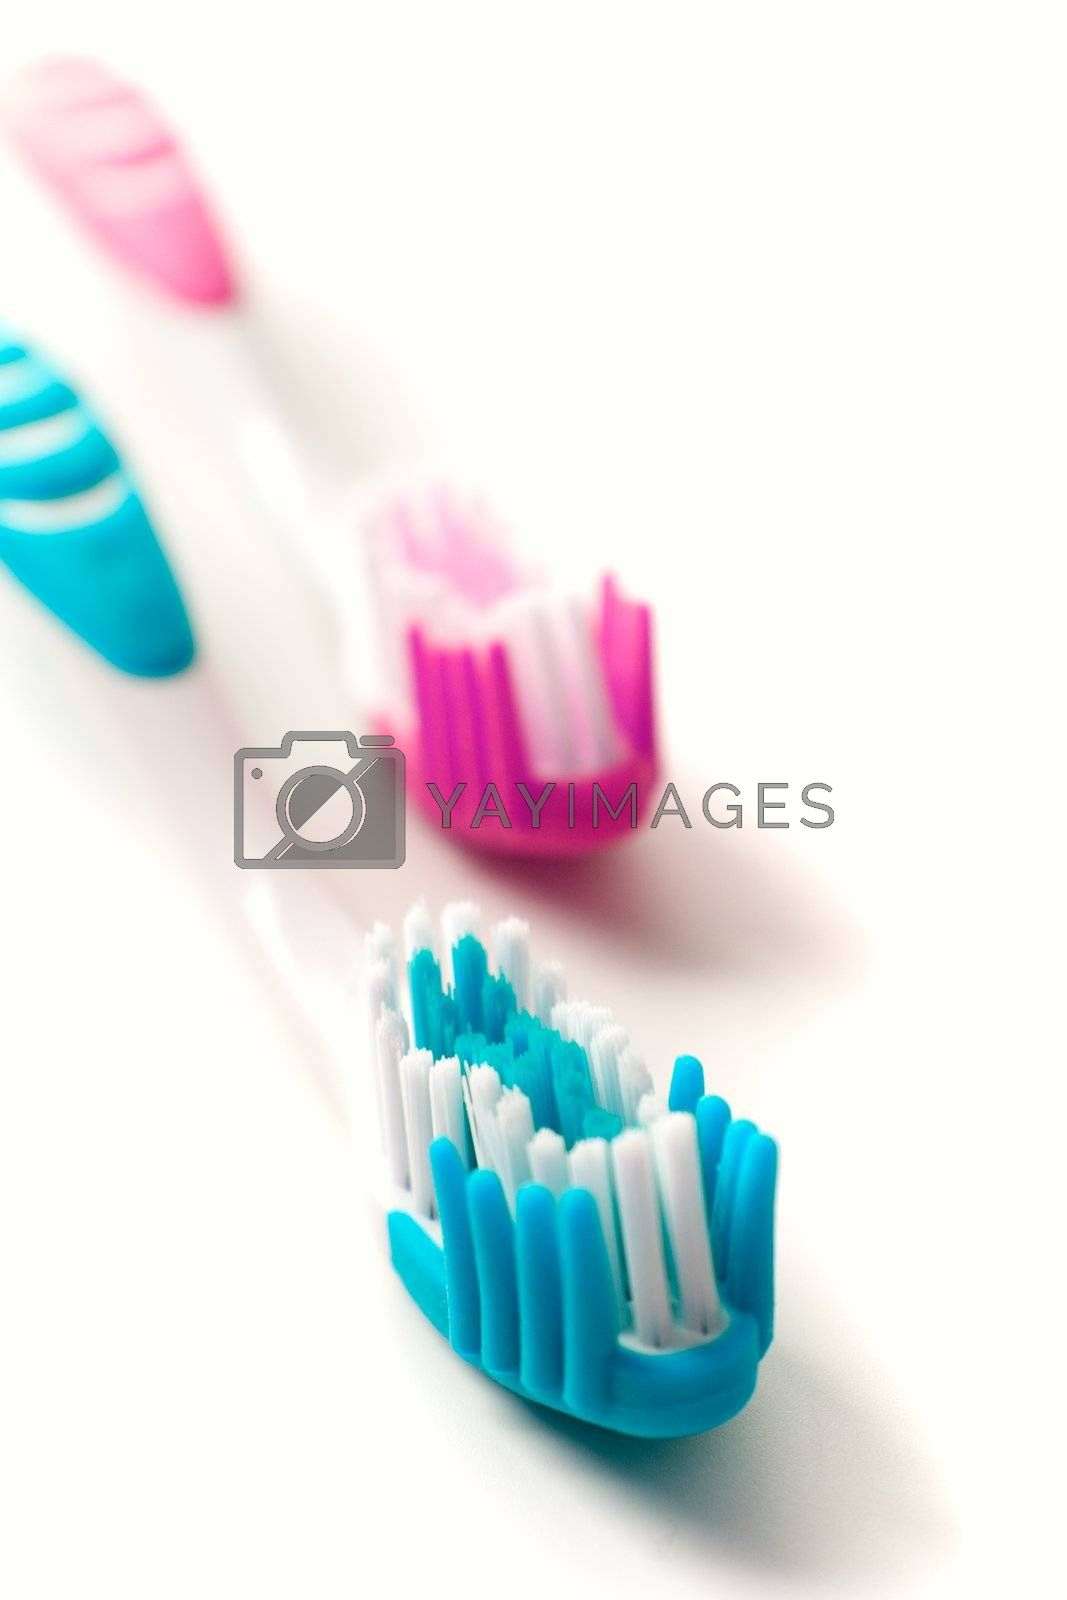 two toothbrushes on white background